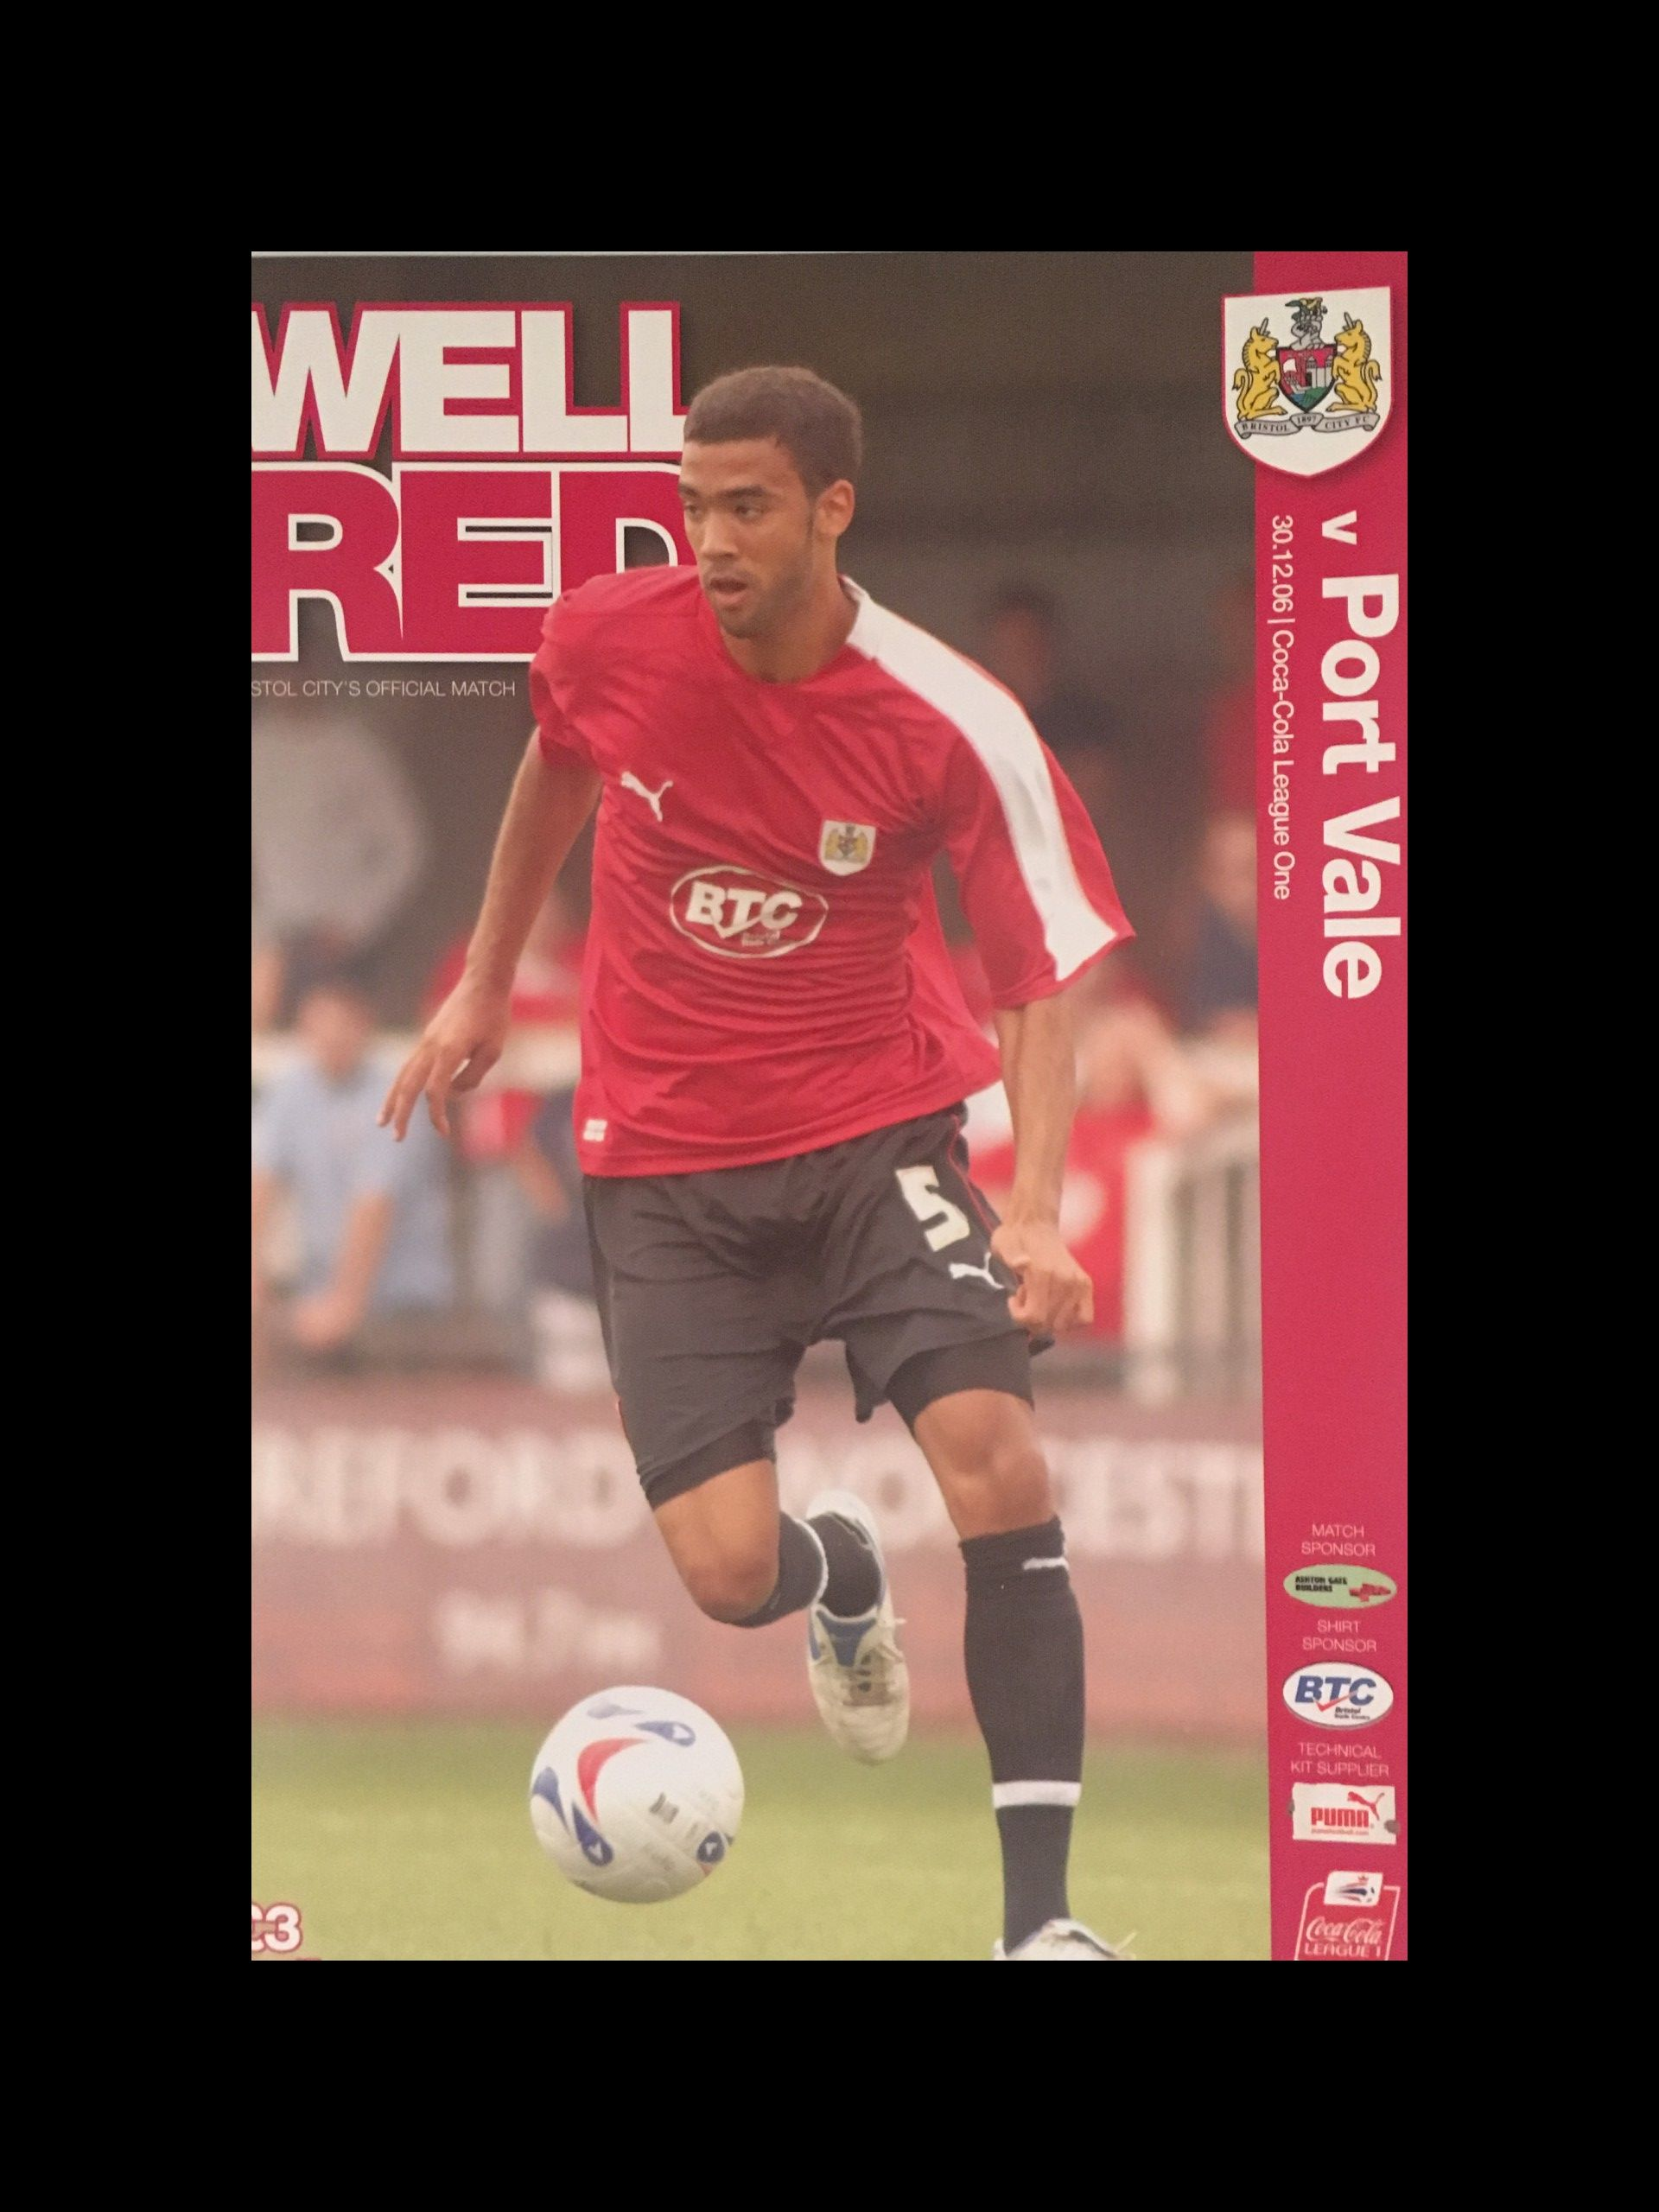 Bristol City v Port Vale 30-12-2006 Programme